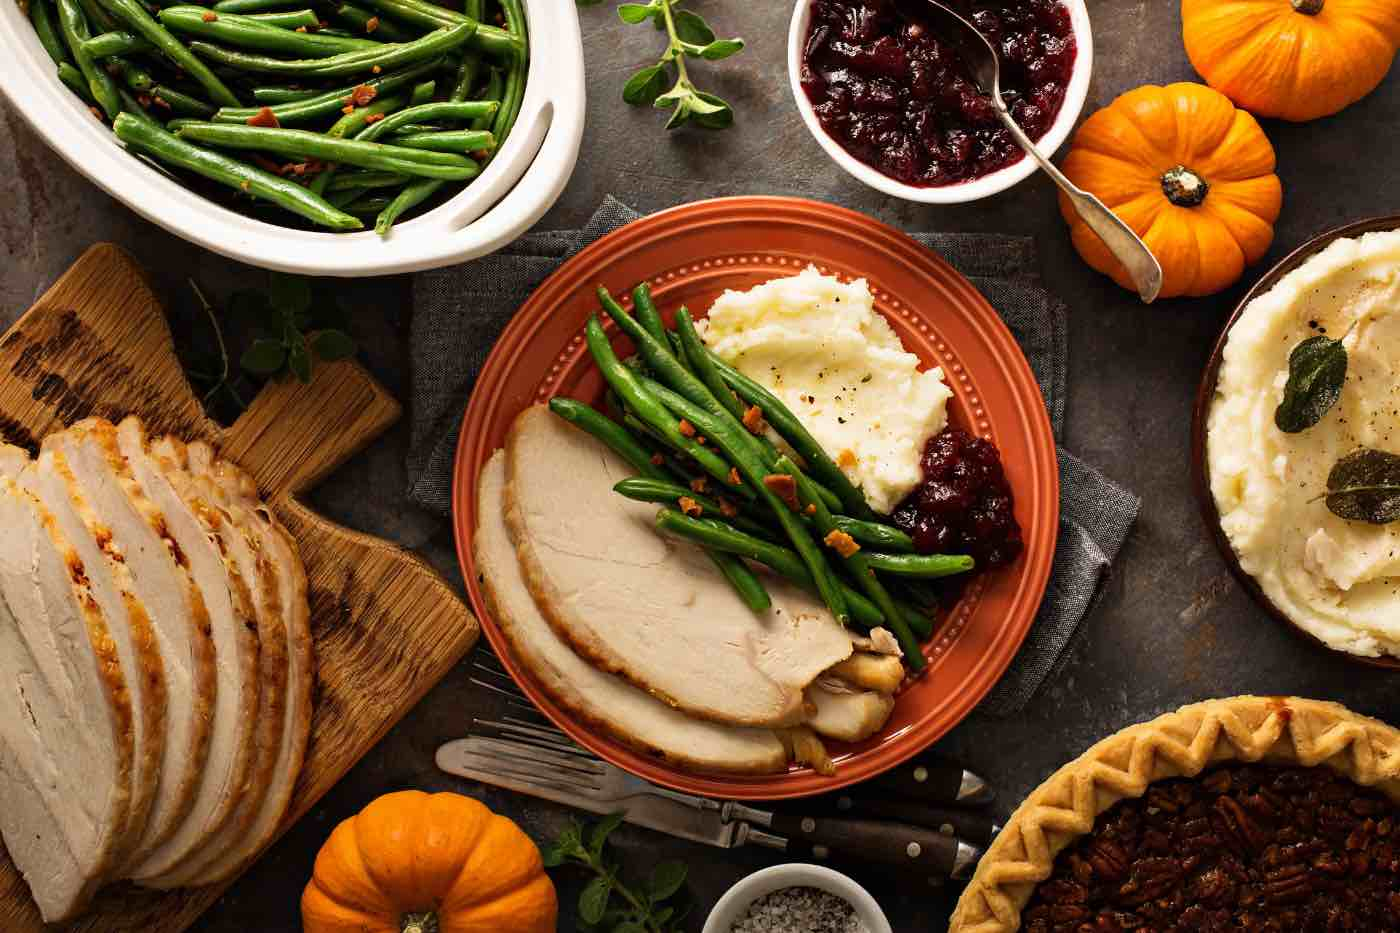 Manage diabetes during the holidays